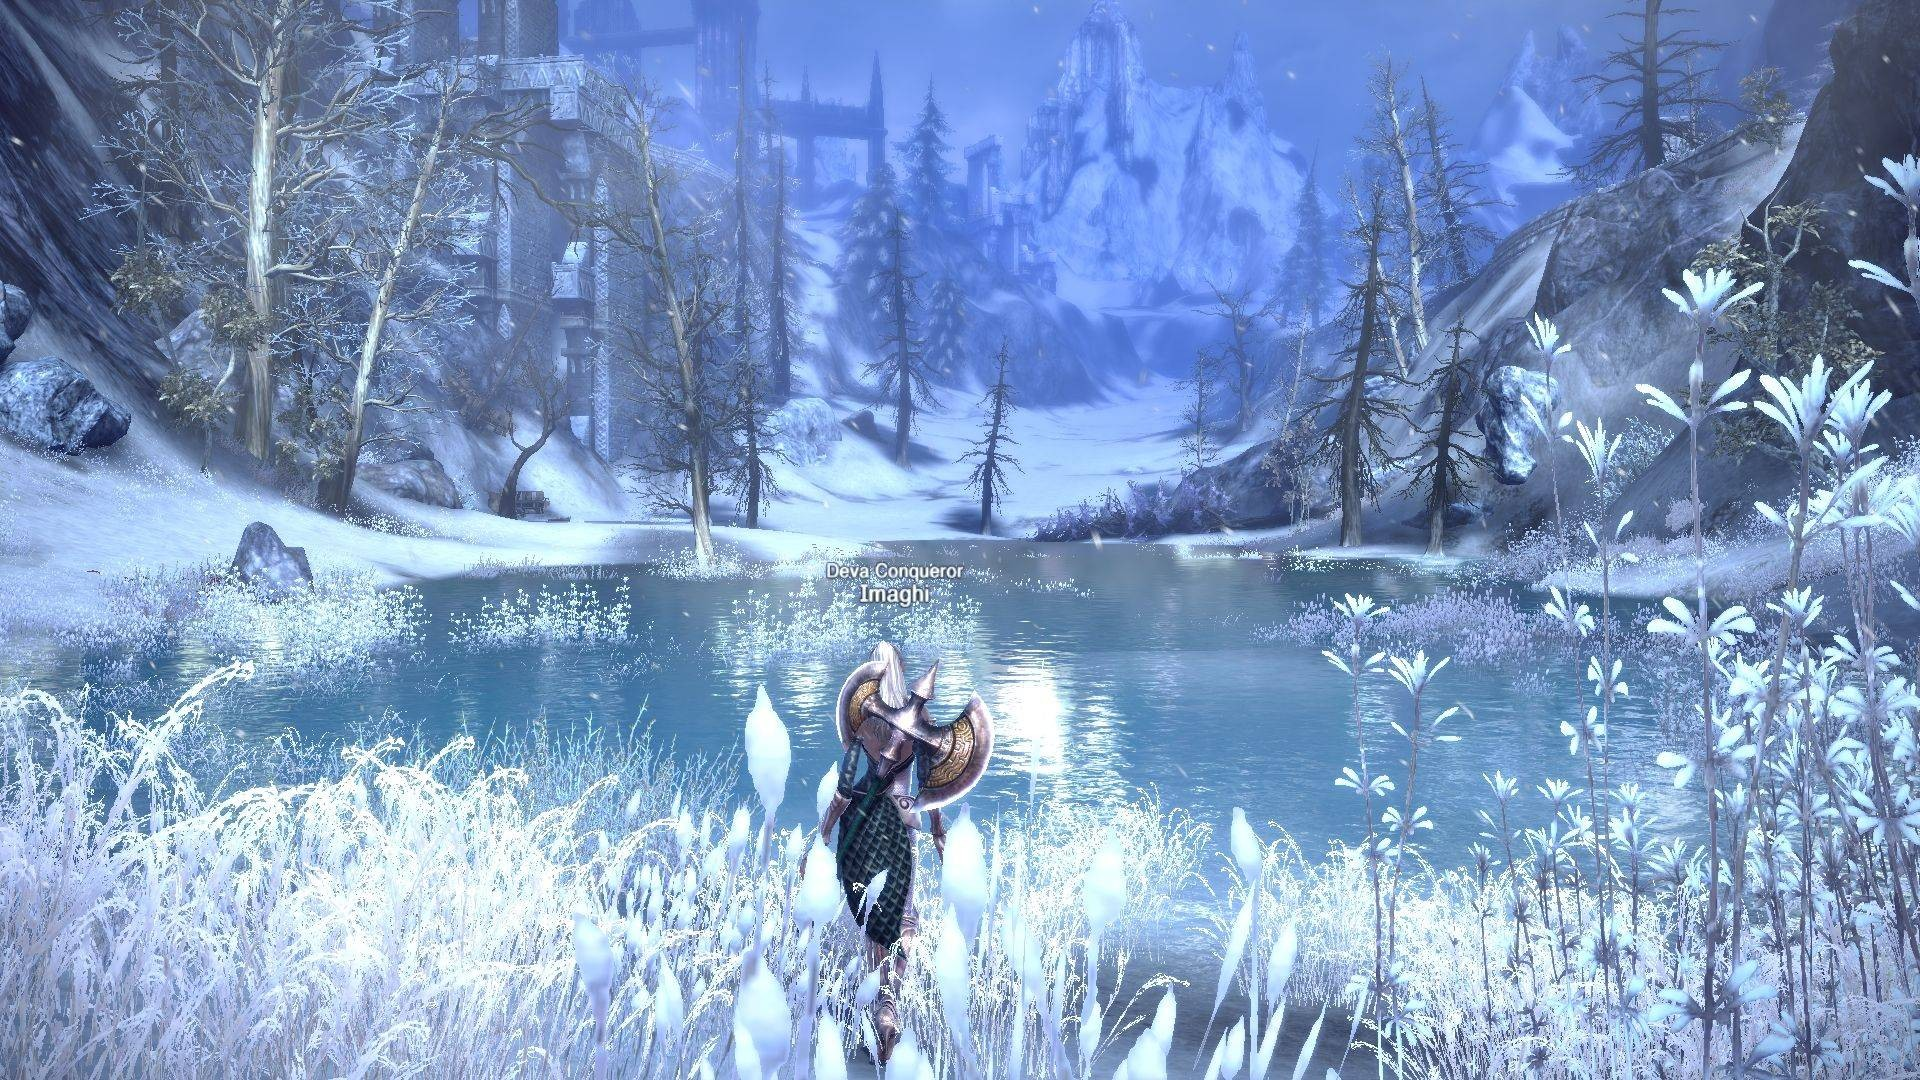 TERA - Community event, not my photo. The rest found here: http://imgur.com/a/7QkOe